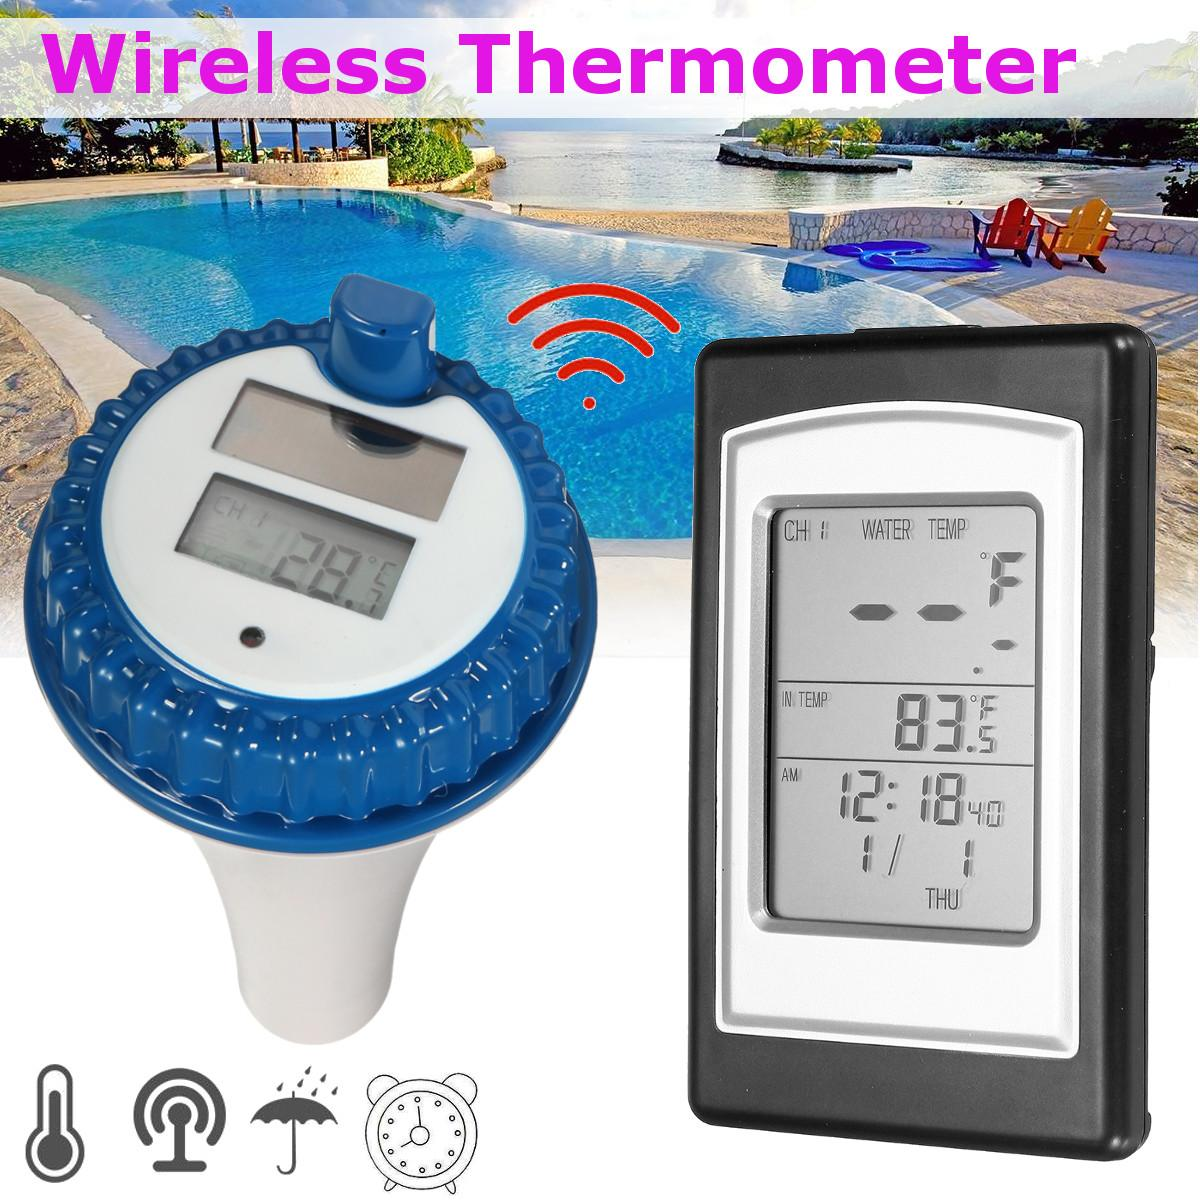 Professional Wireless Digital Swimming Pool Thermometer Wireless Thermometer In Swimming Pool Spa Hot Tub Waterproof ThermometerProfessional Wireless Digital Swimming Pool Thermometer Wireless Thermometer In Swimming Pool Spa Hot Tub Waterproof Thermometer